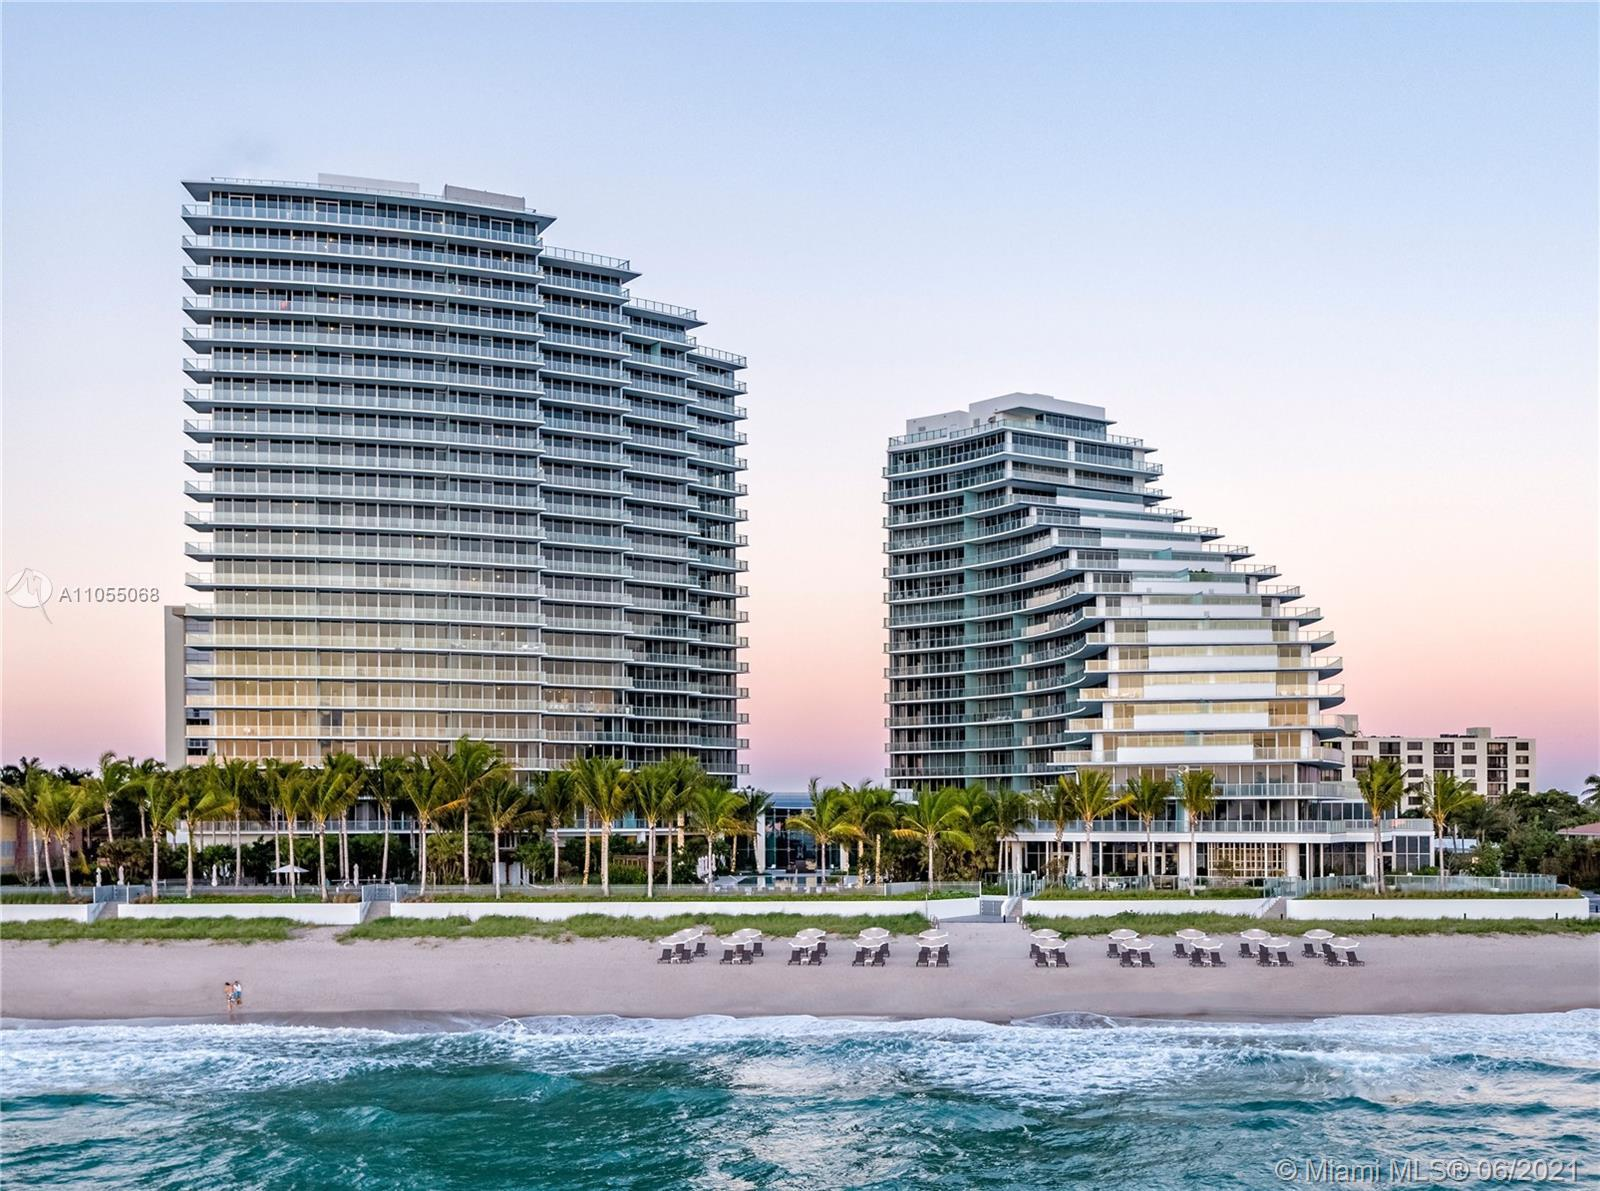 AUBERGE BEACH RESIDENCES OFFERS ELEGANCE,STYLE AND COMFORT. LOCATED ON THE SANDS OF FT.LAUDERDALE BE